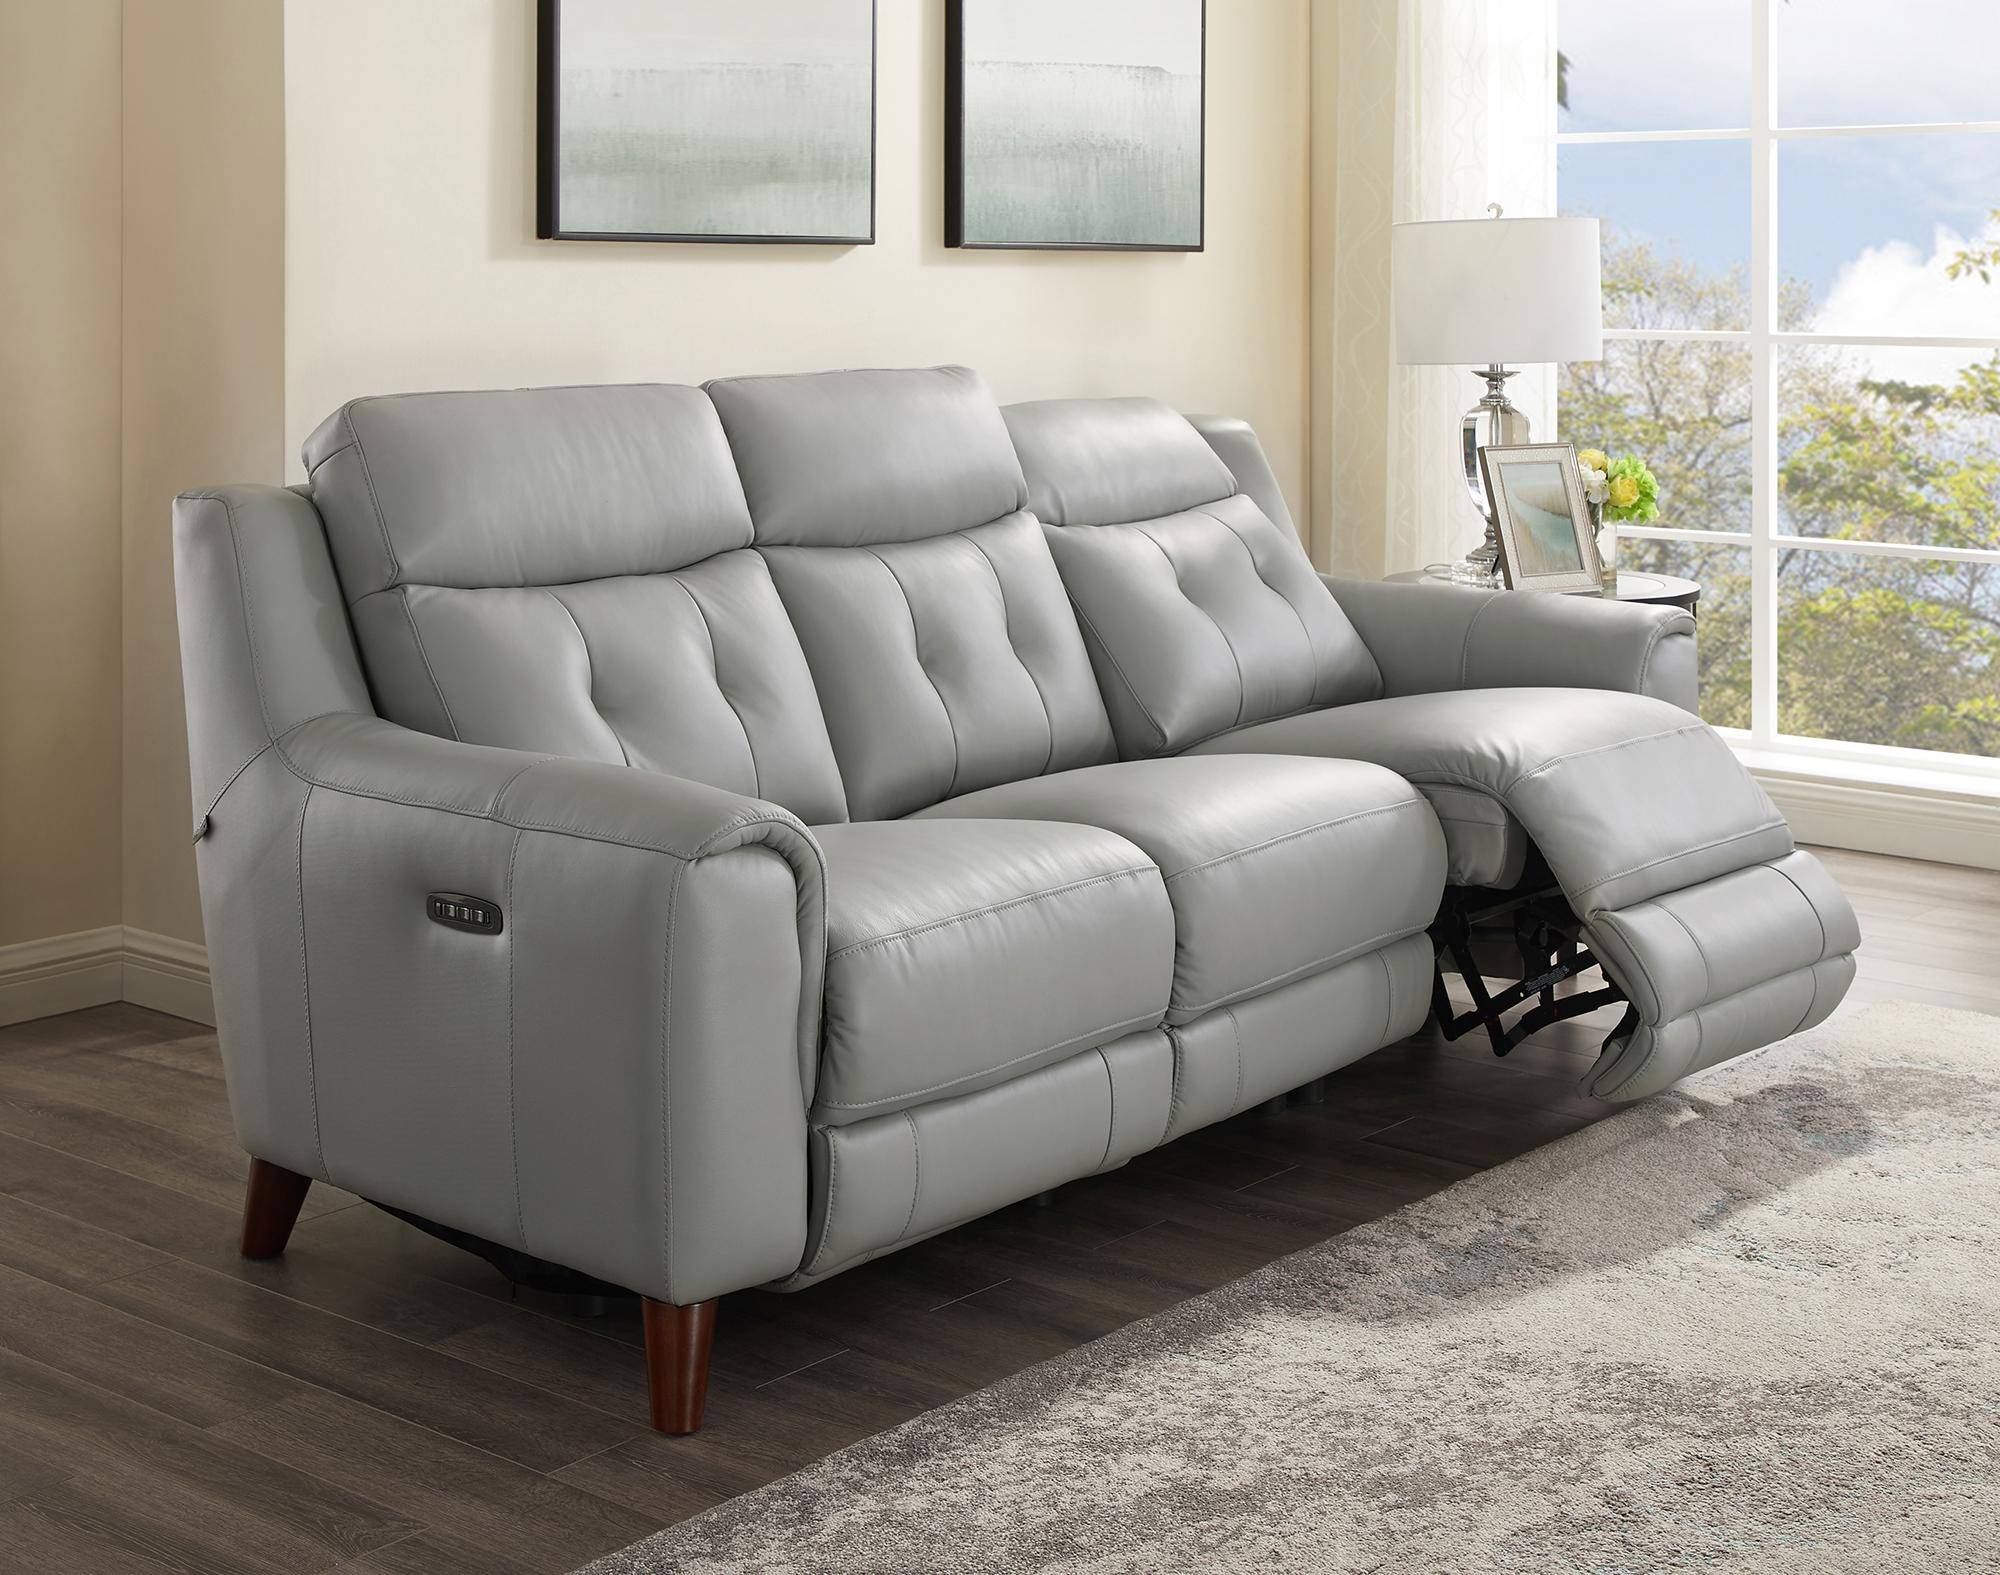 Groovy Silver Gray Genuine Leather Power Reclining Sofa Set 3P Gmtry Best Dining Table And Chair Ideas Images Gmtryco